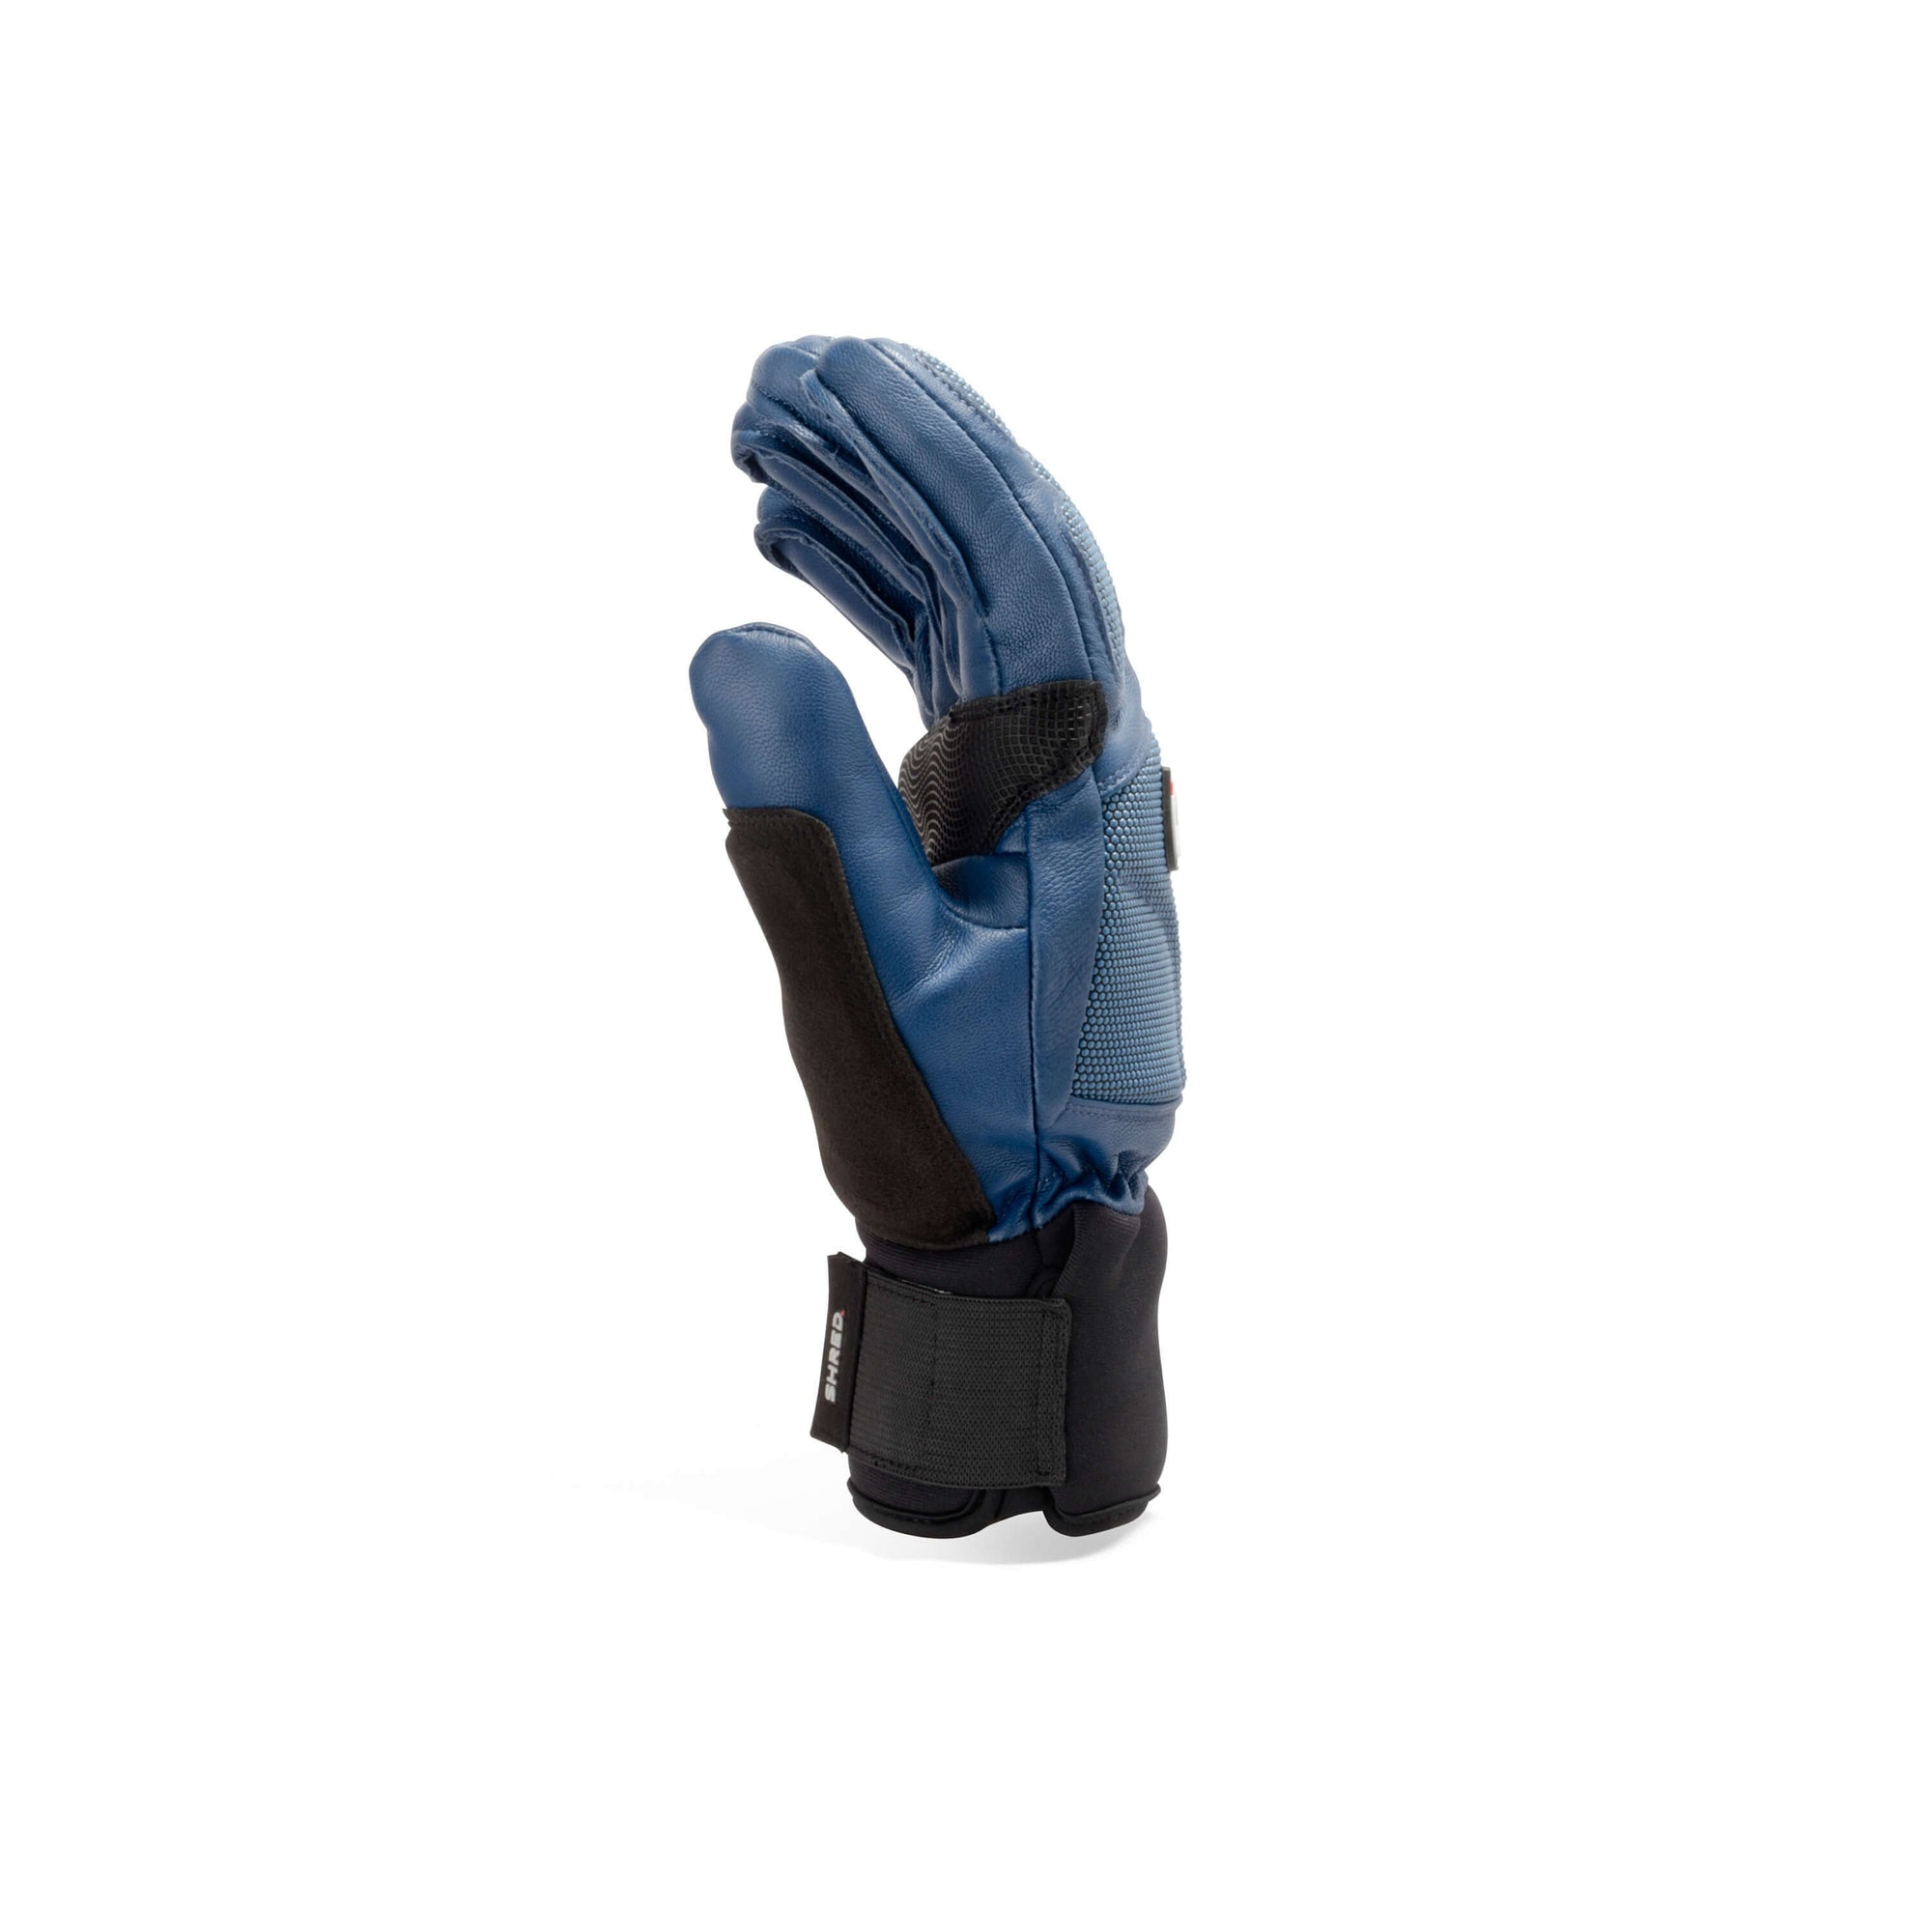 All Mtn Protective Gloves D-Lux Navy - Protective Gloves